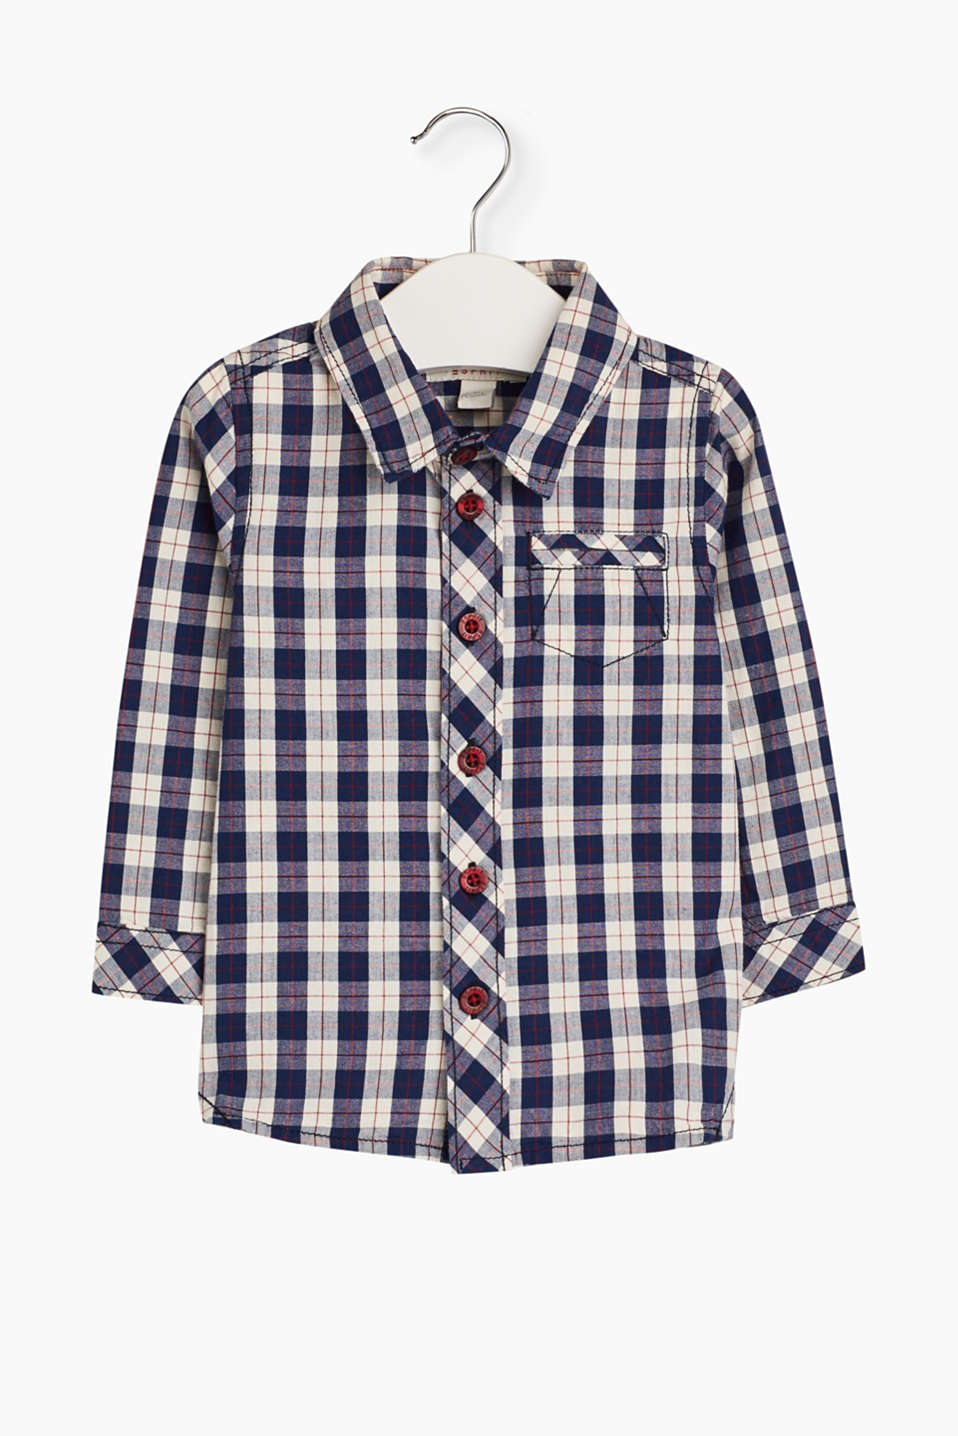 Casual lumberjack look for the little ones: This check shirt boasts skin-friendly cotton fabric